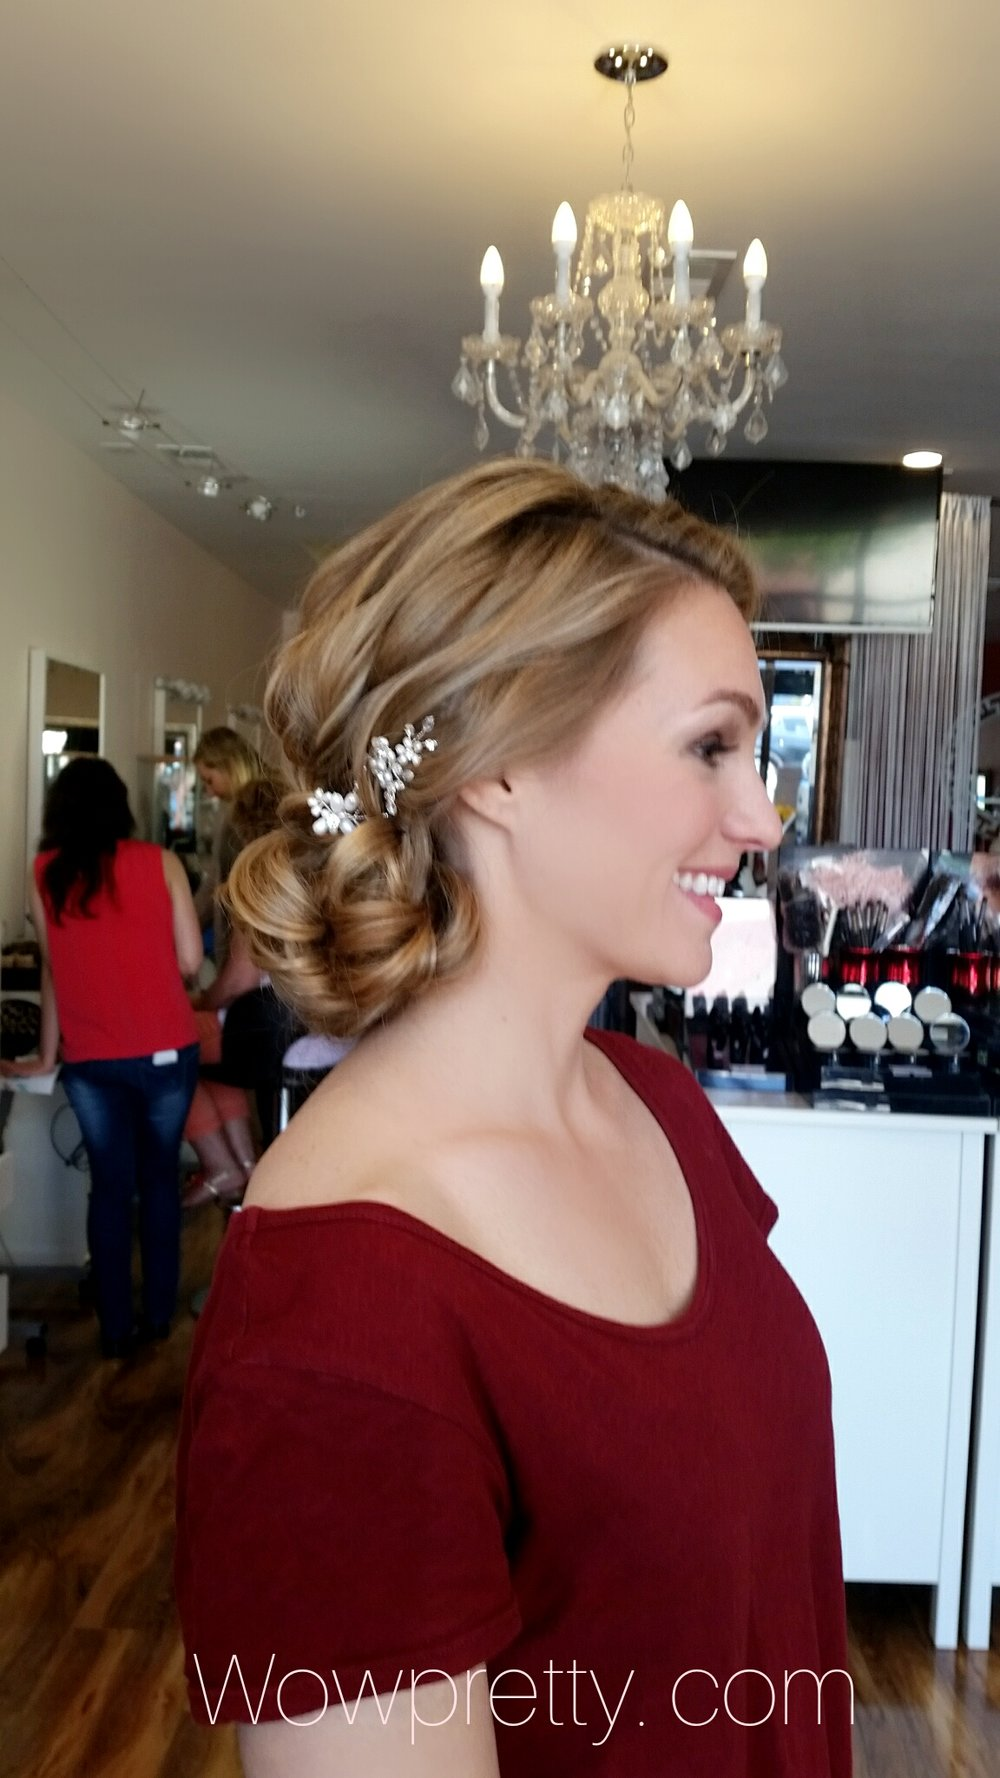 wedding-trial-makeup-and-hair_26825356912_o.jpg